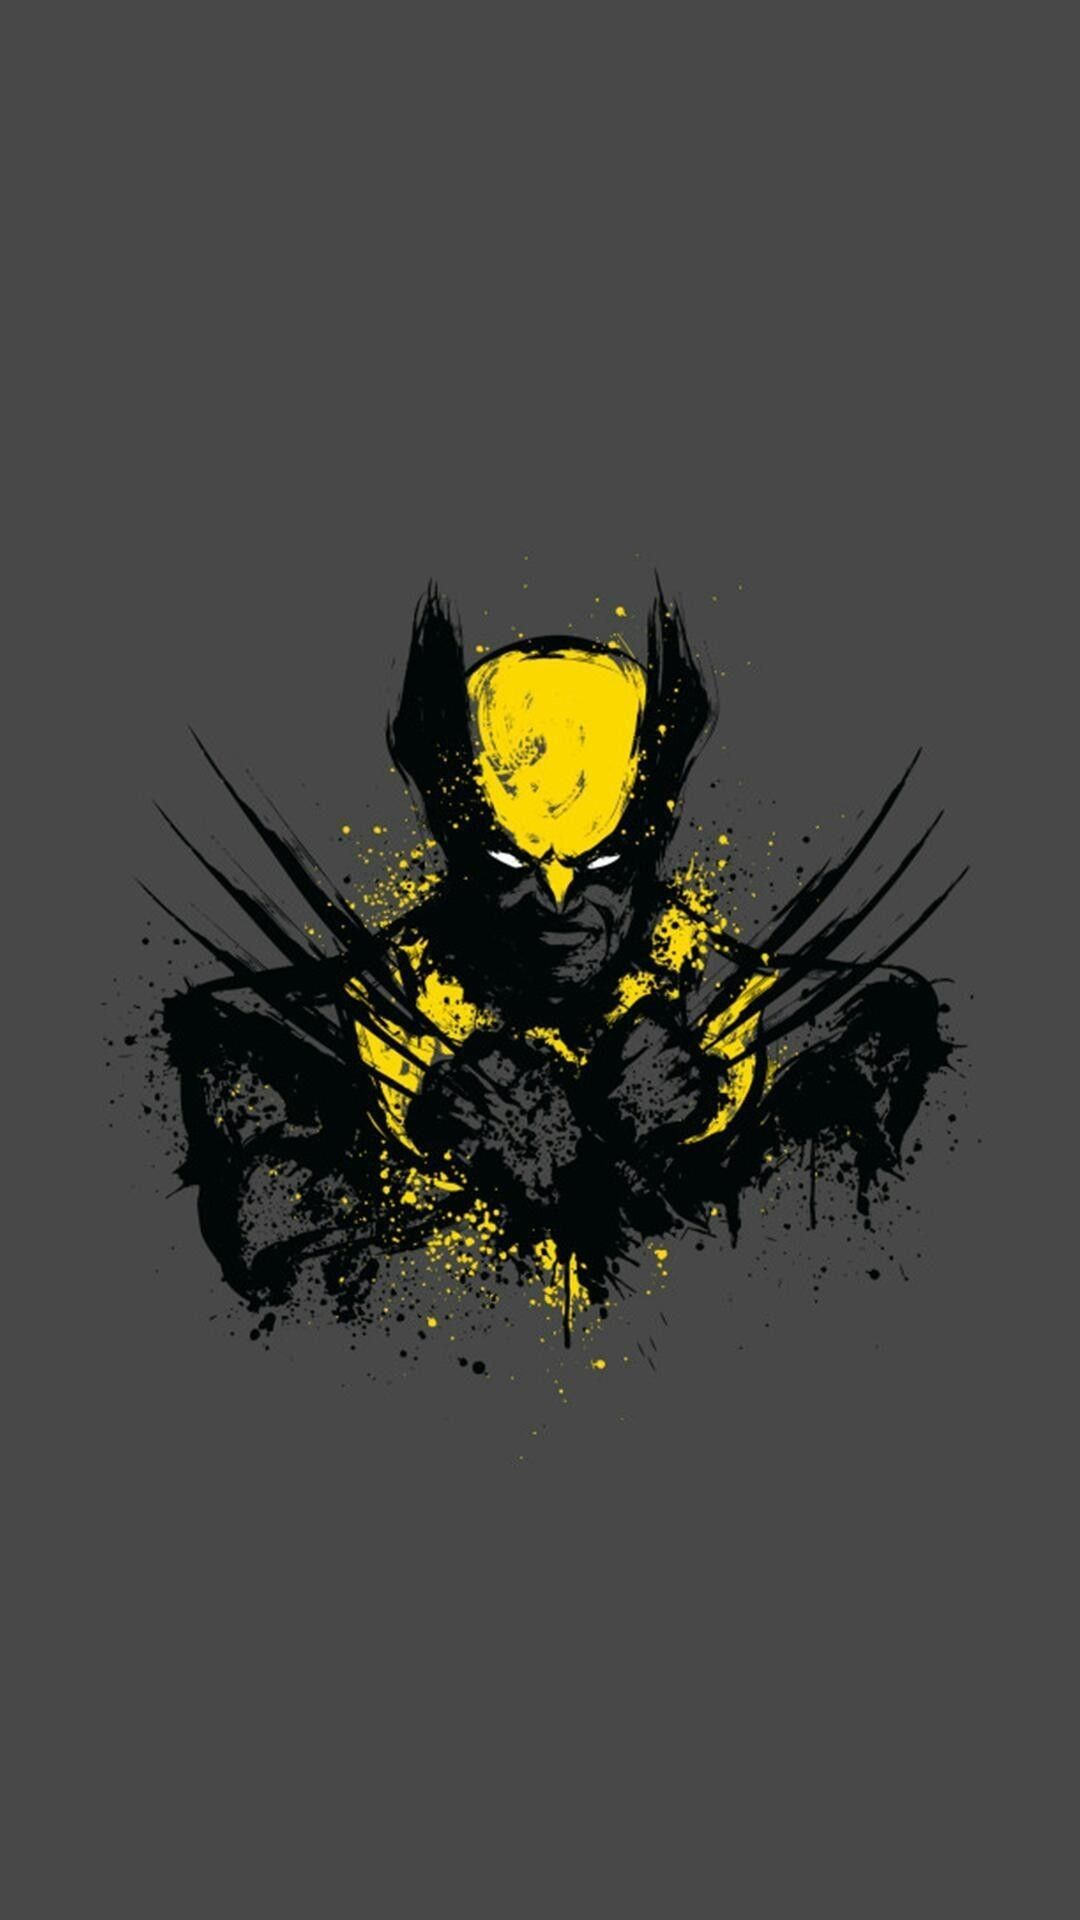 1080x1920 77+ Wolverine Wallpapers on WallpaperPlay